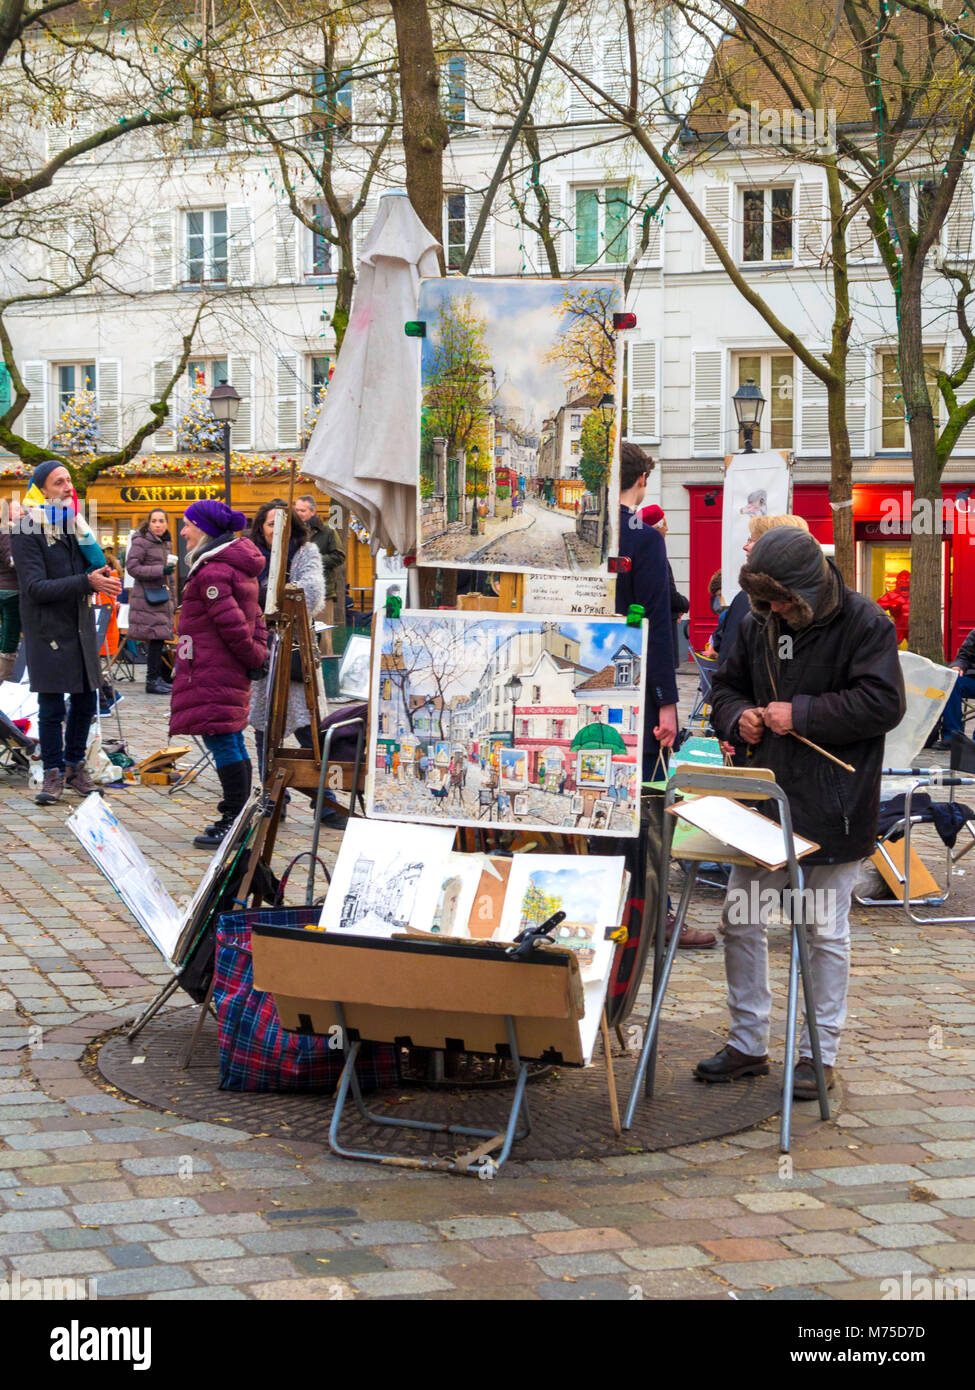 Paris 18 arr. Street artist in Place du Tertre, Montmartre, Paris, France - Stock Image